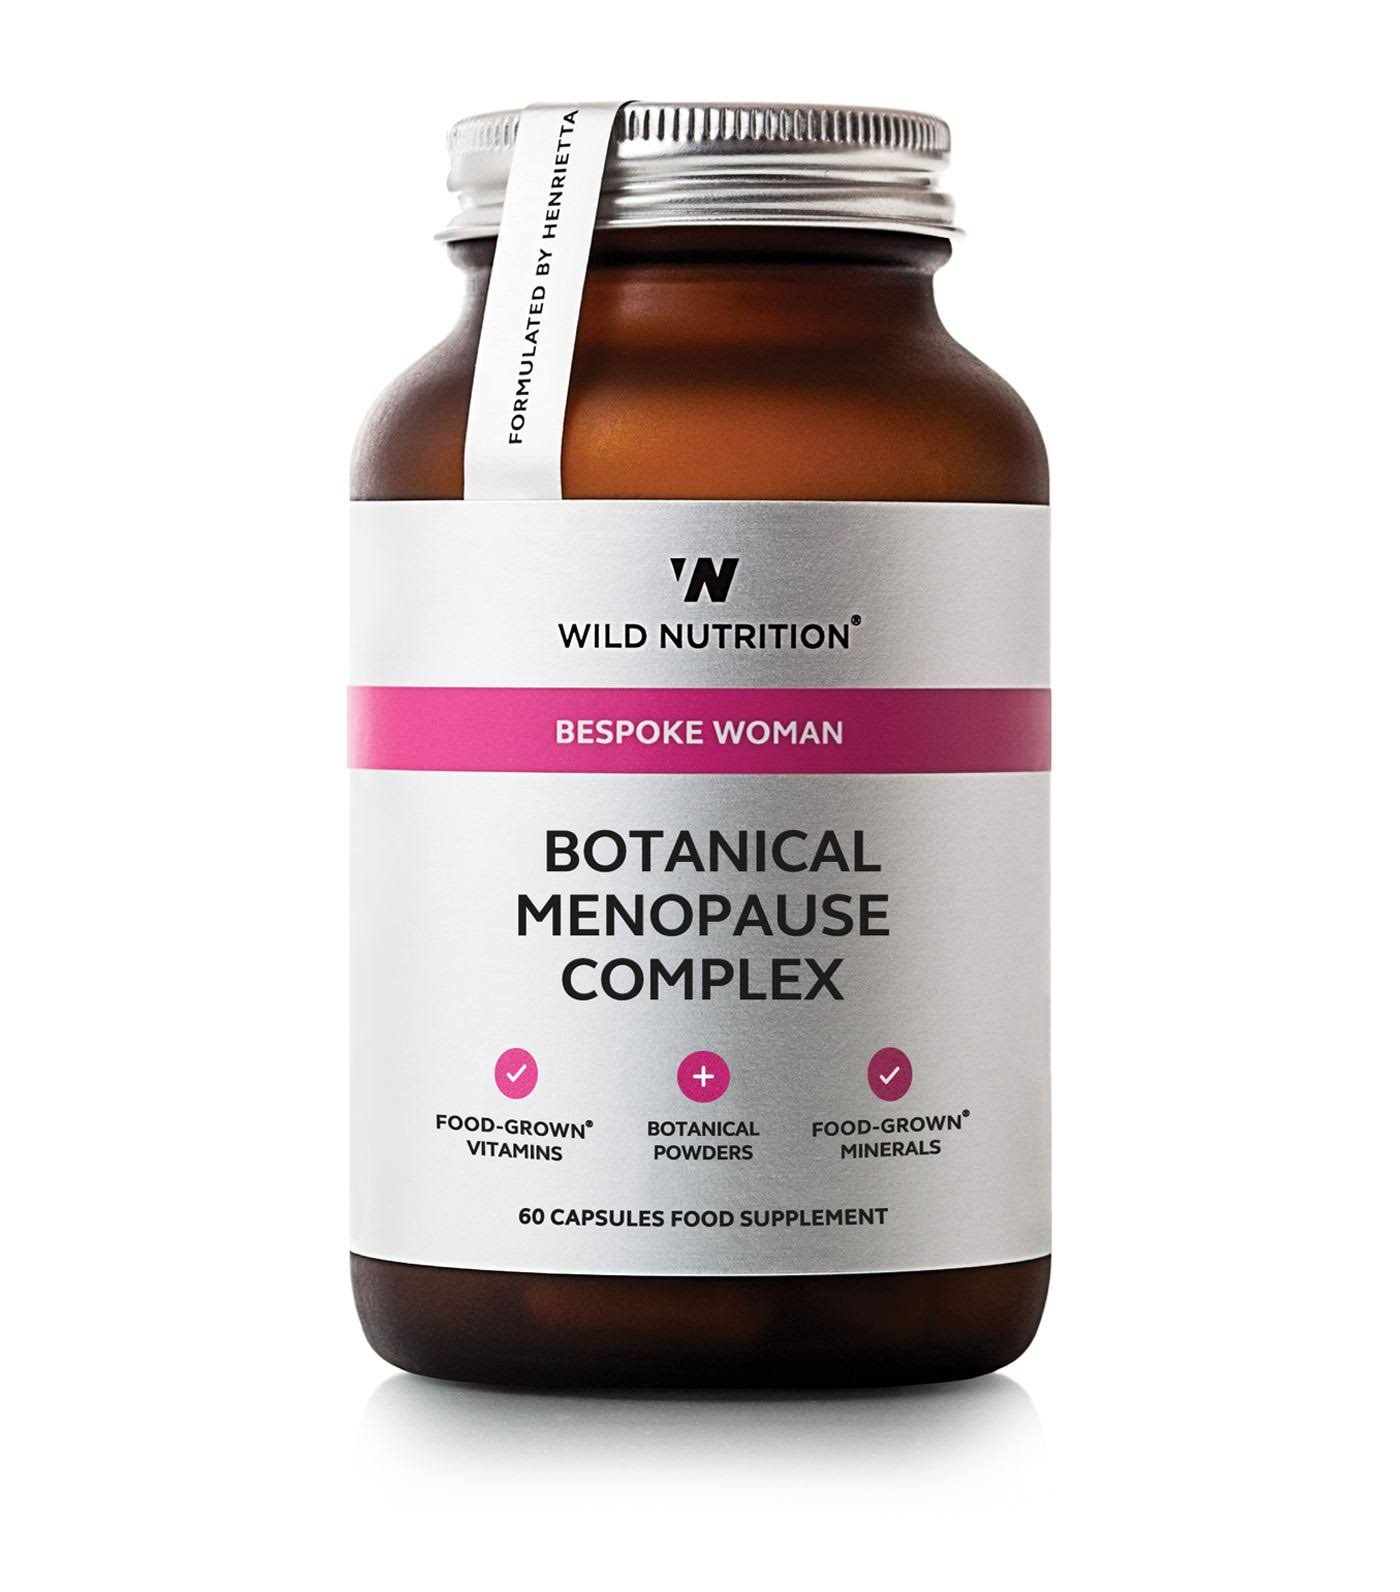 Wild Nutrition - Food-Grown Botanical Menopause Complex - 60 Capsules